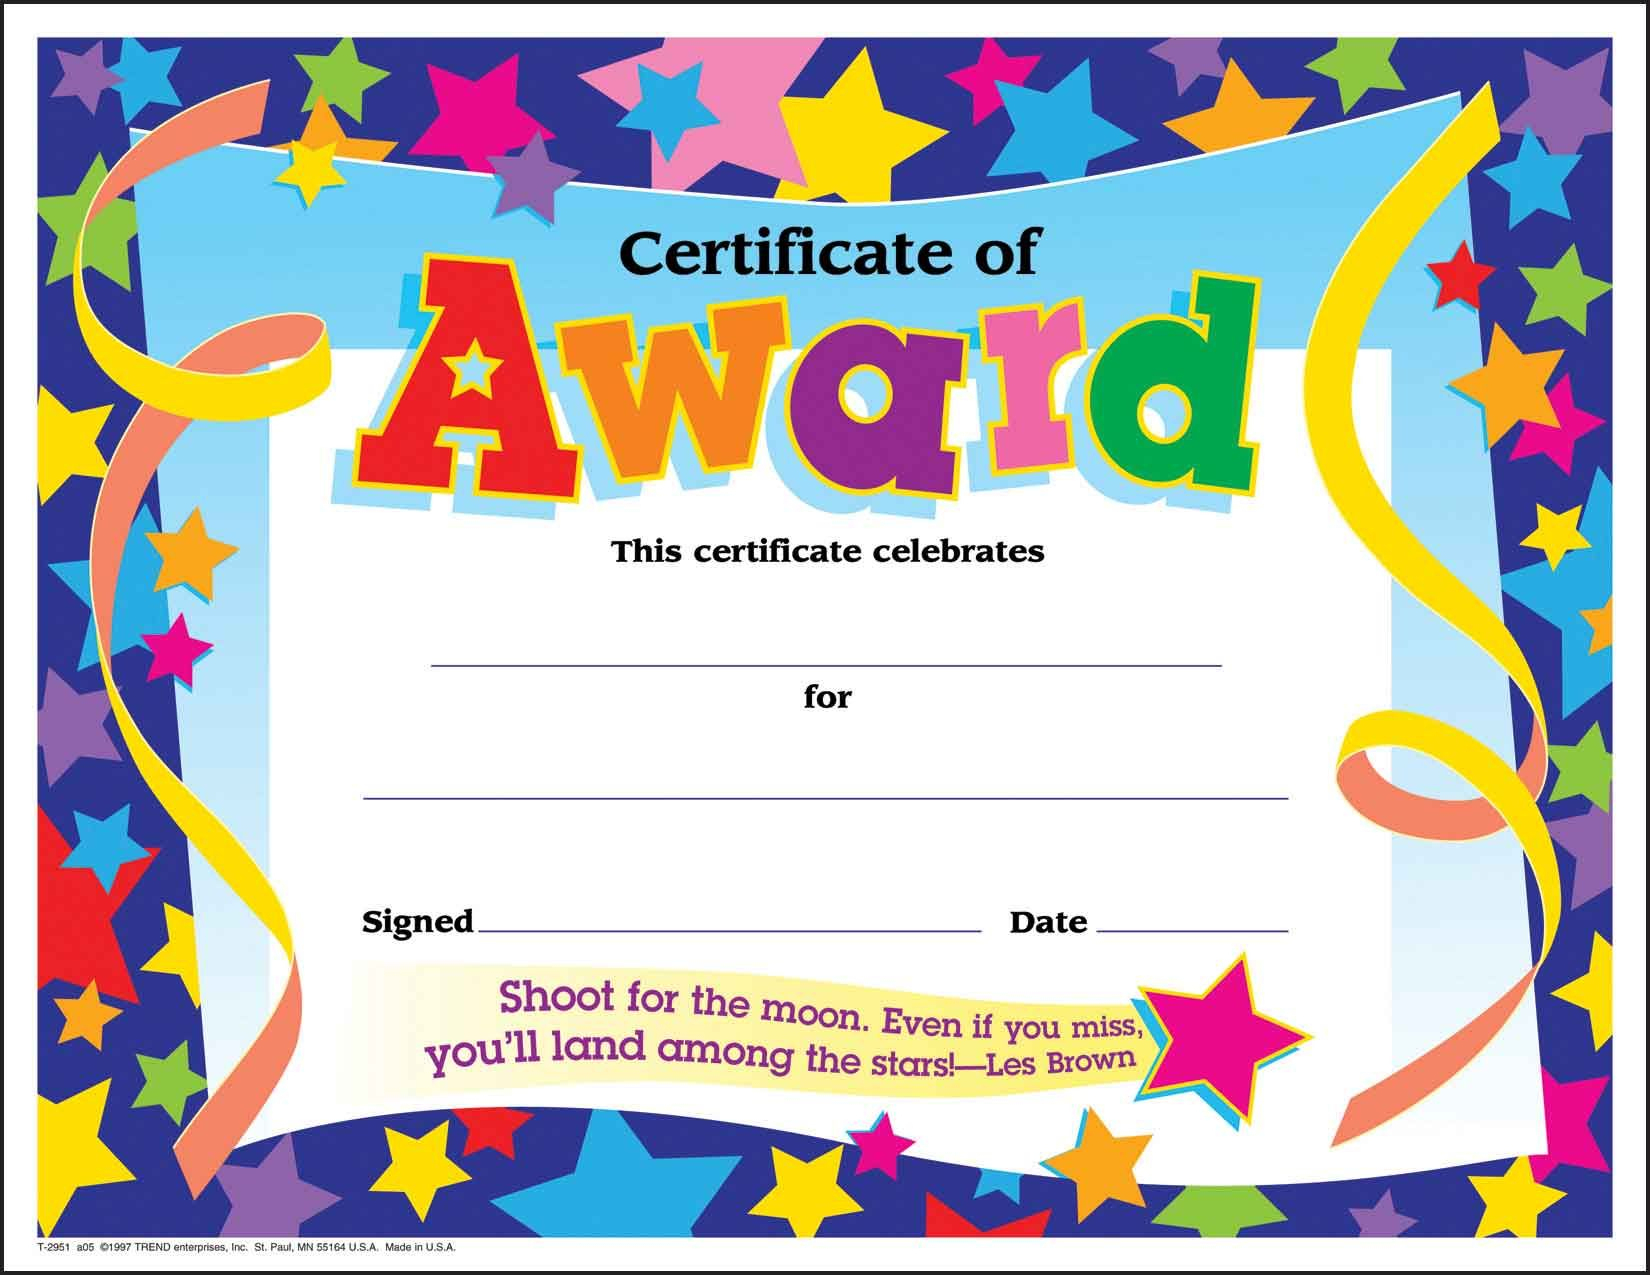 Certificate Template For Kids Free Certificate Templates - Free Printable Certificates For Students